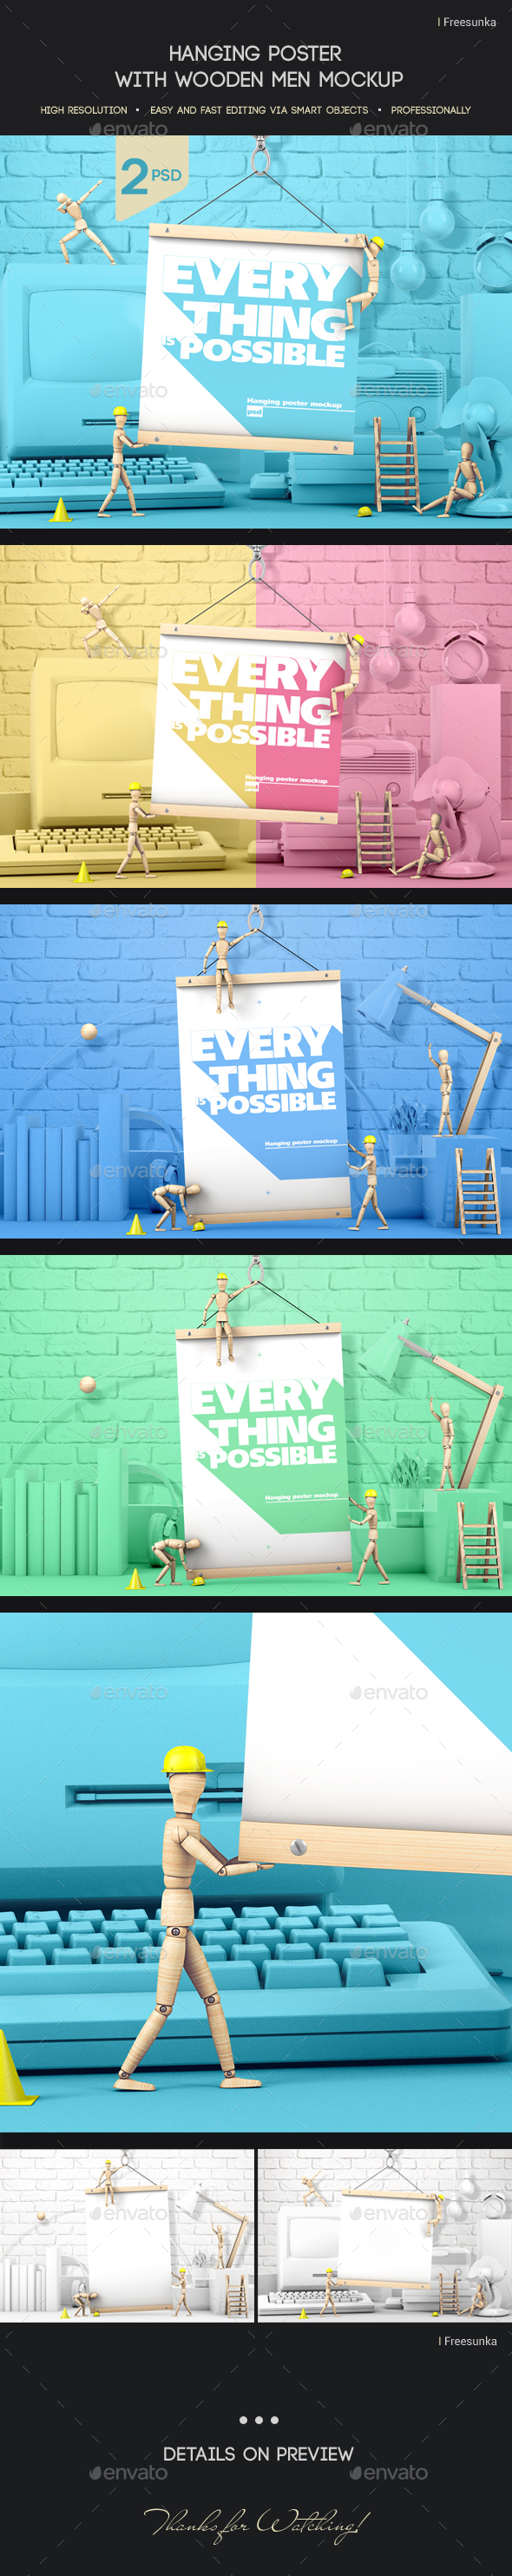 Hanging Poster With Wooden Men Mockup